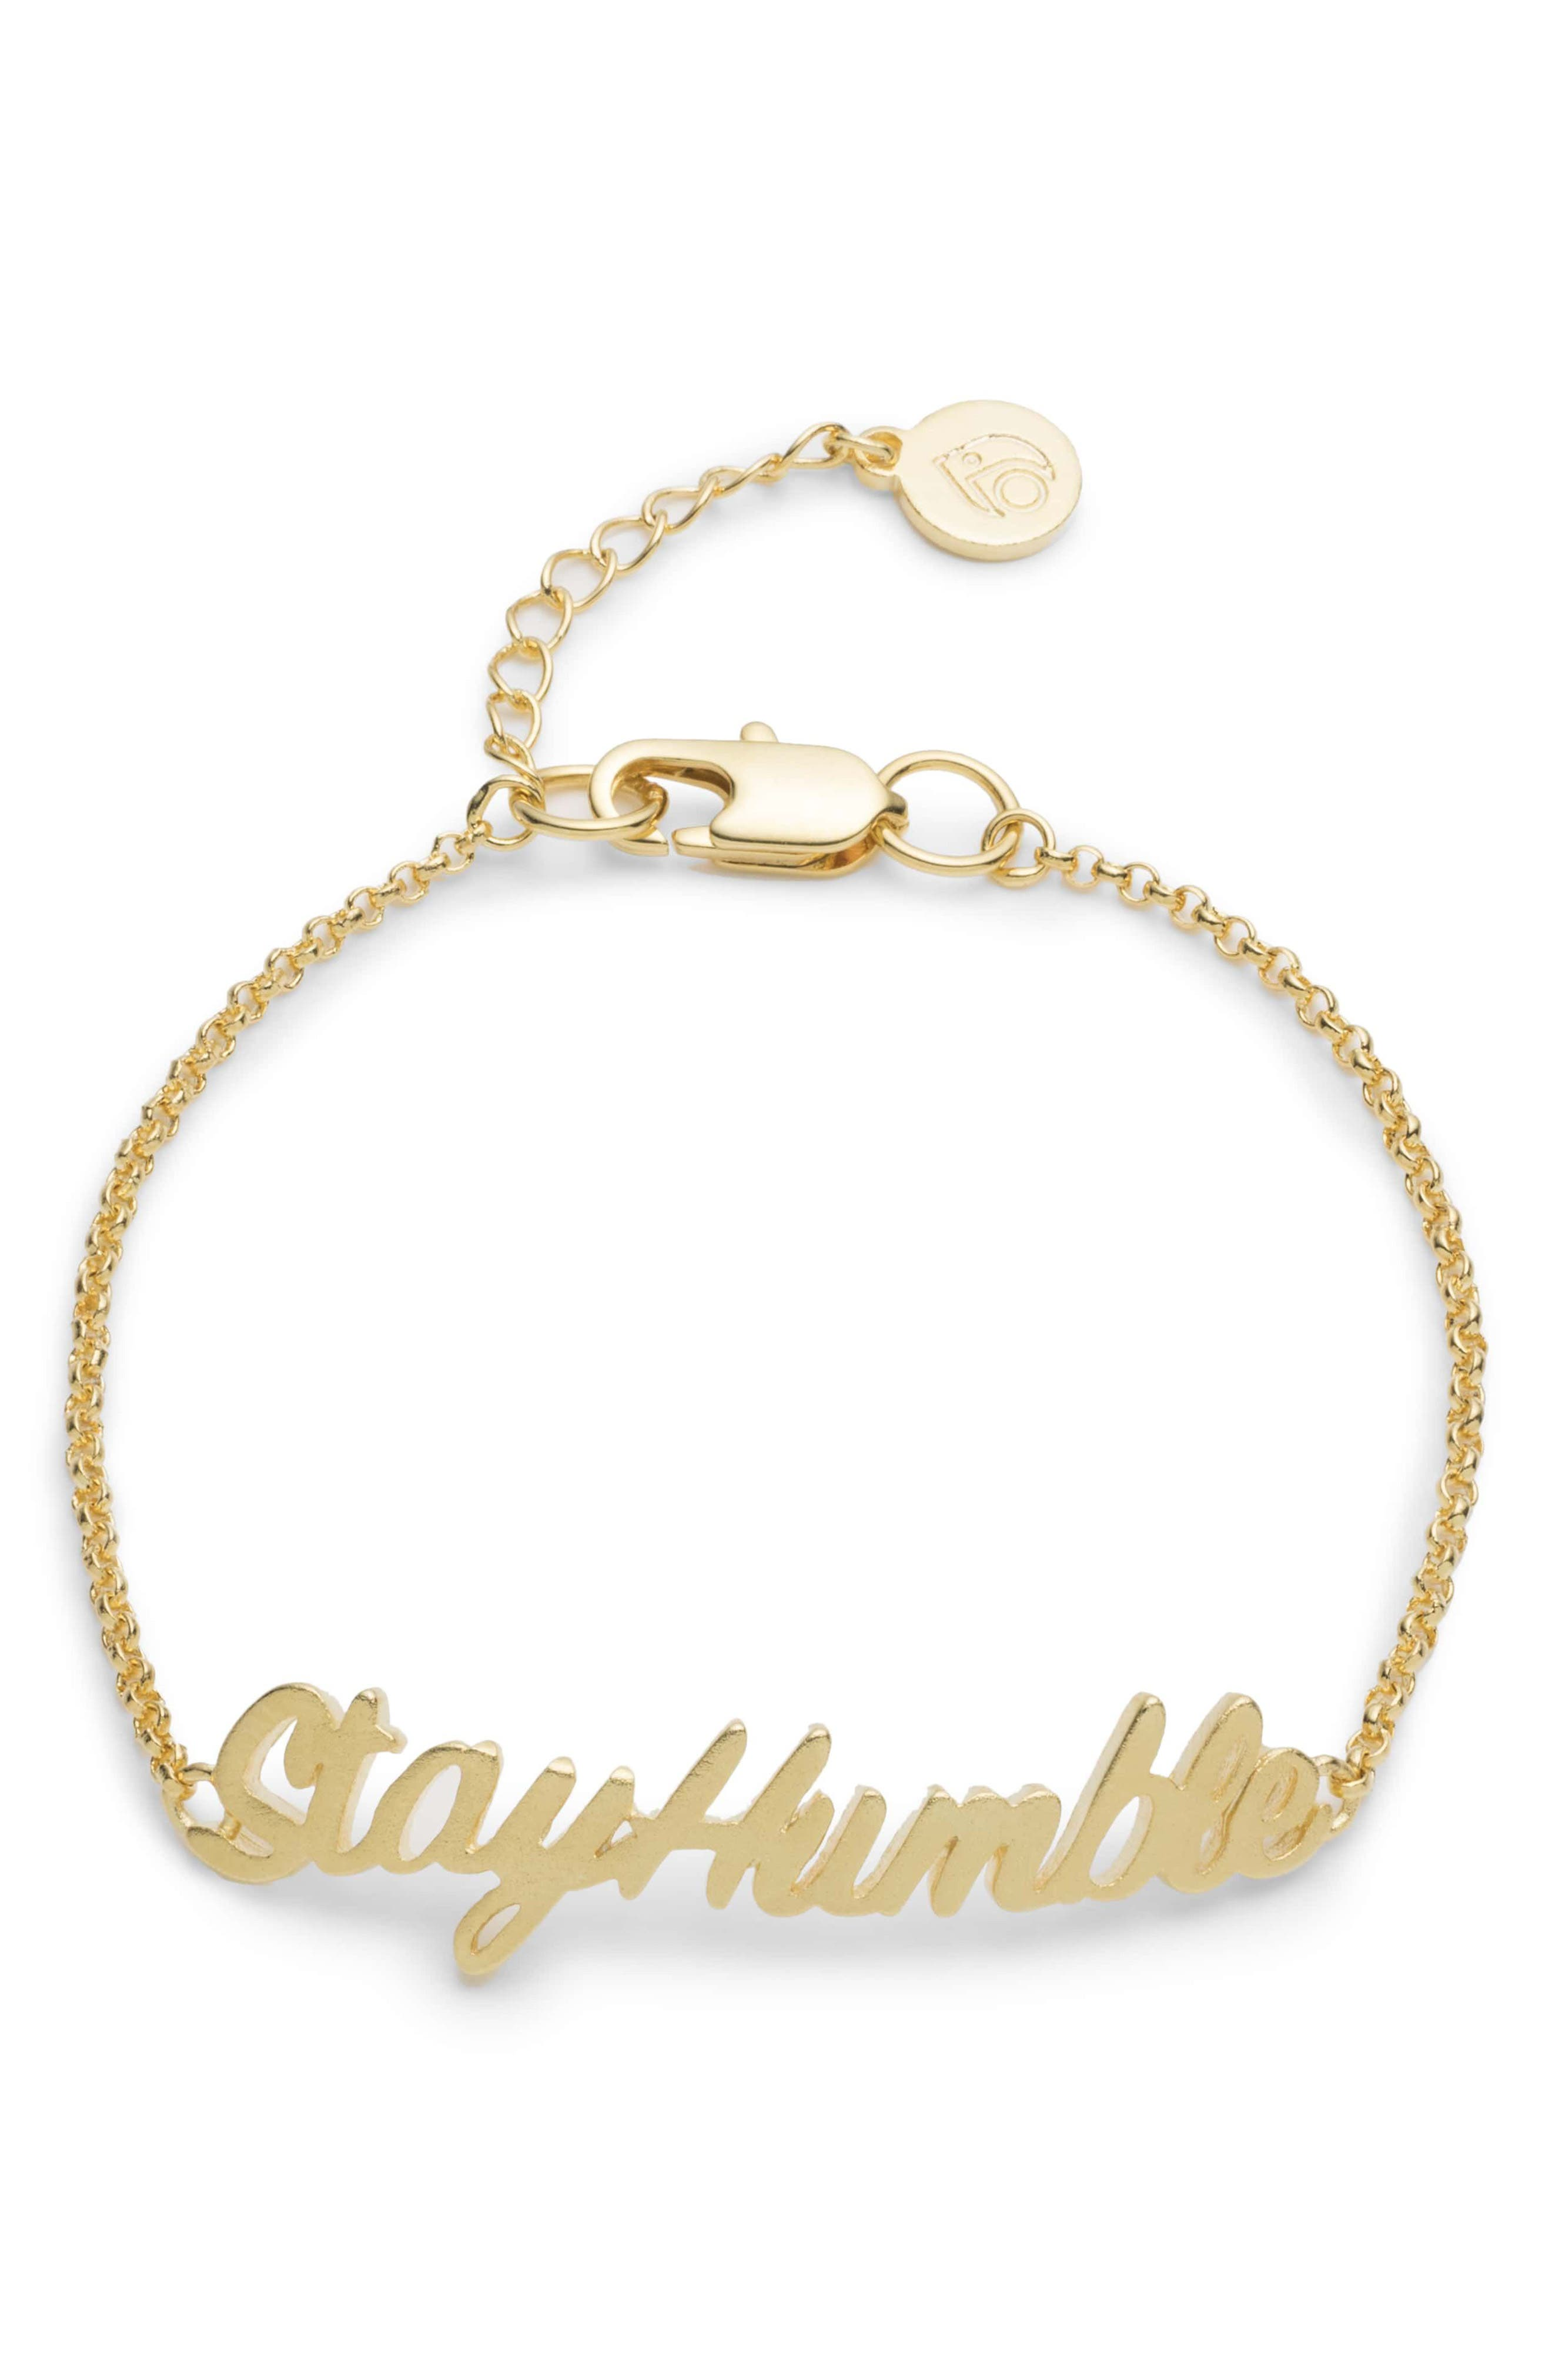 Stay Humble Bracelet,                         Main,                         color, Gold